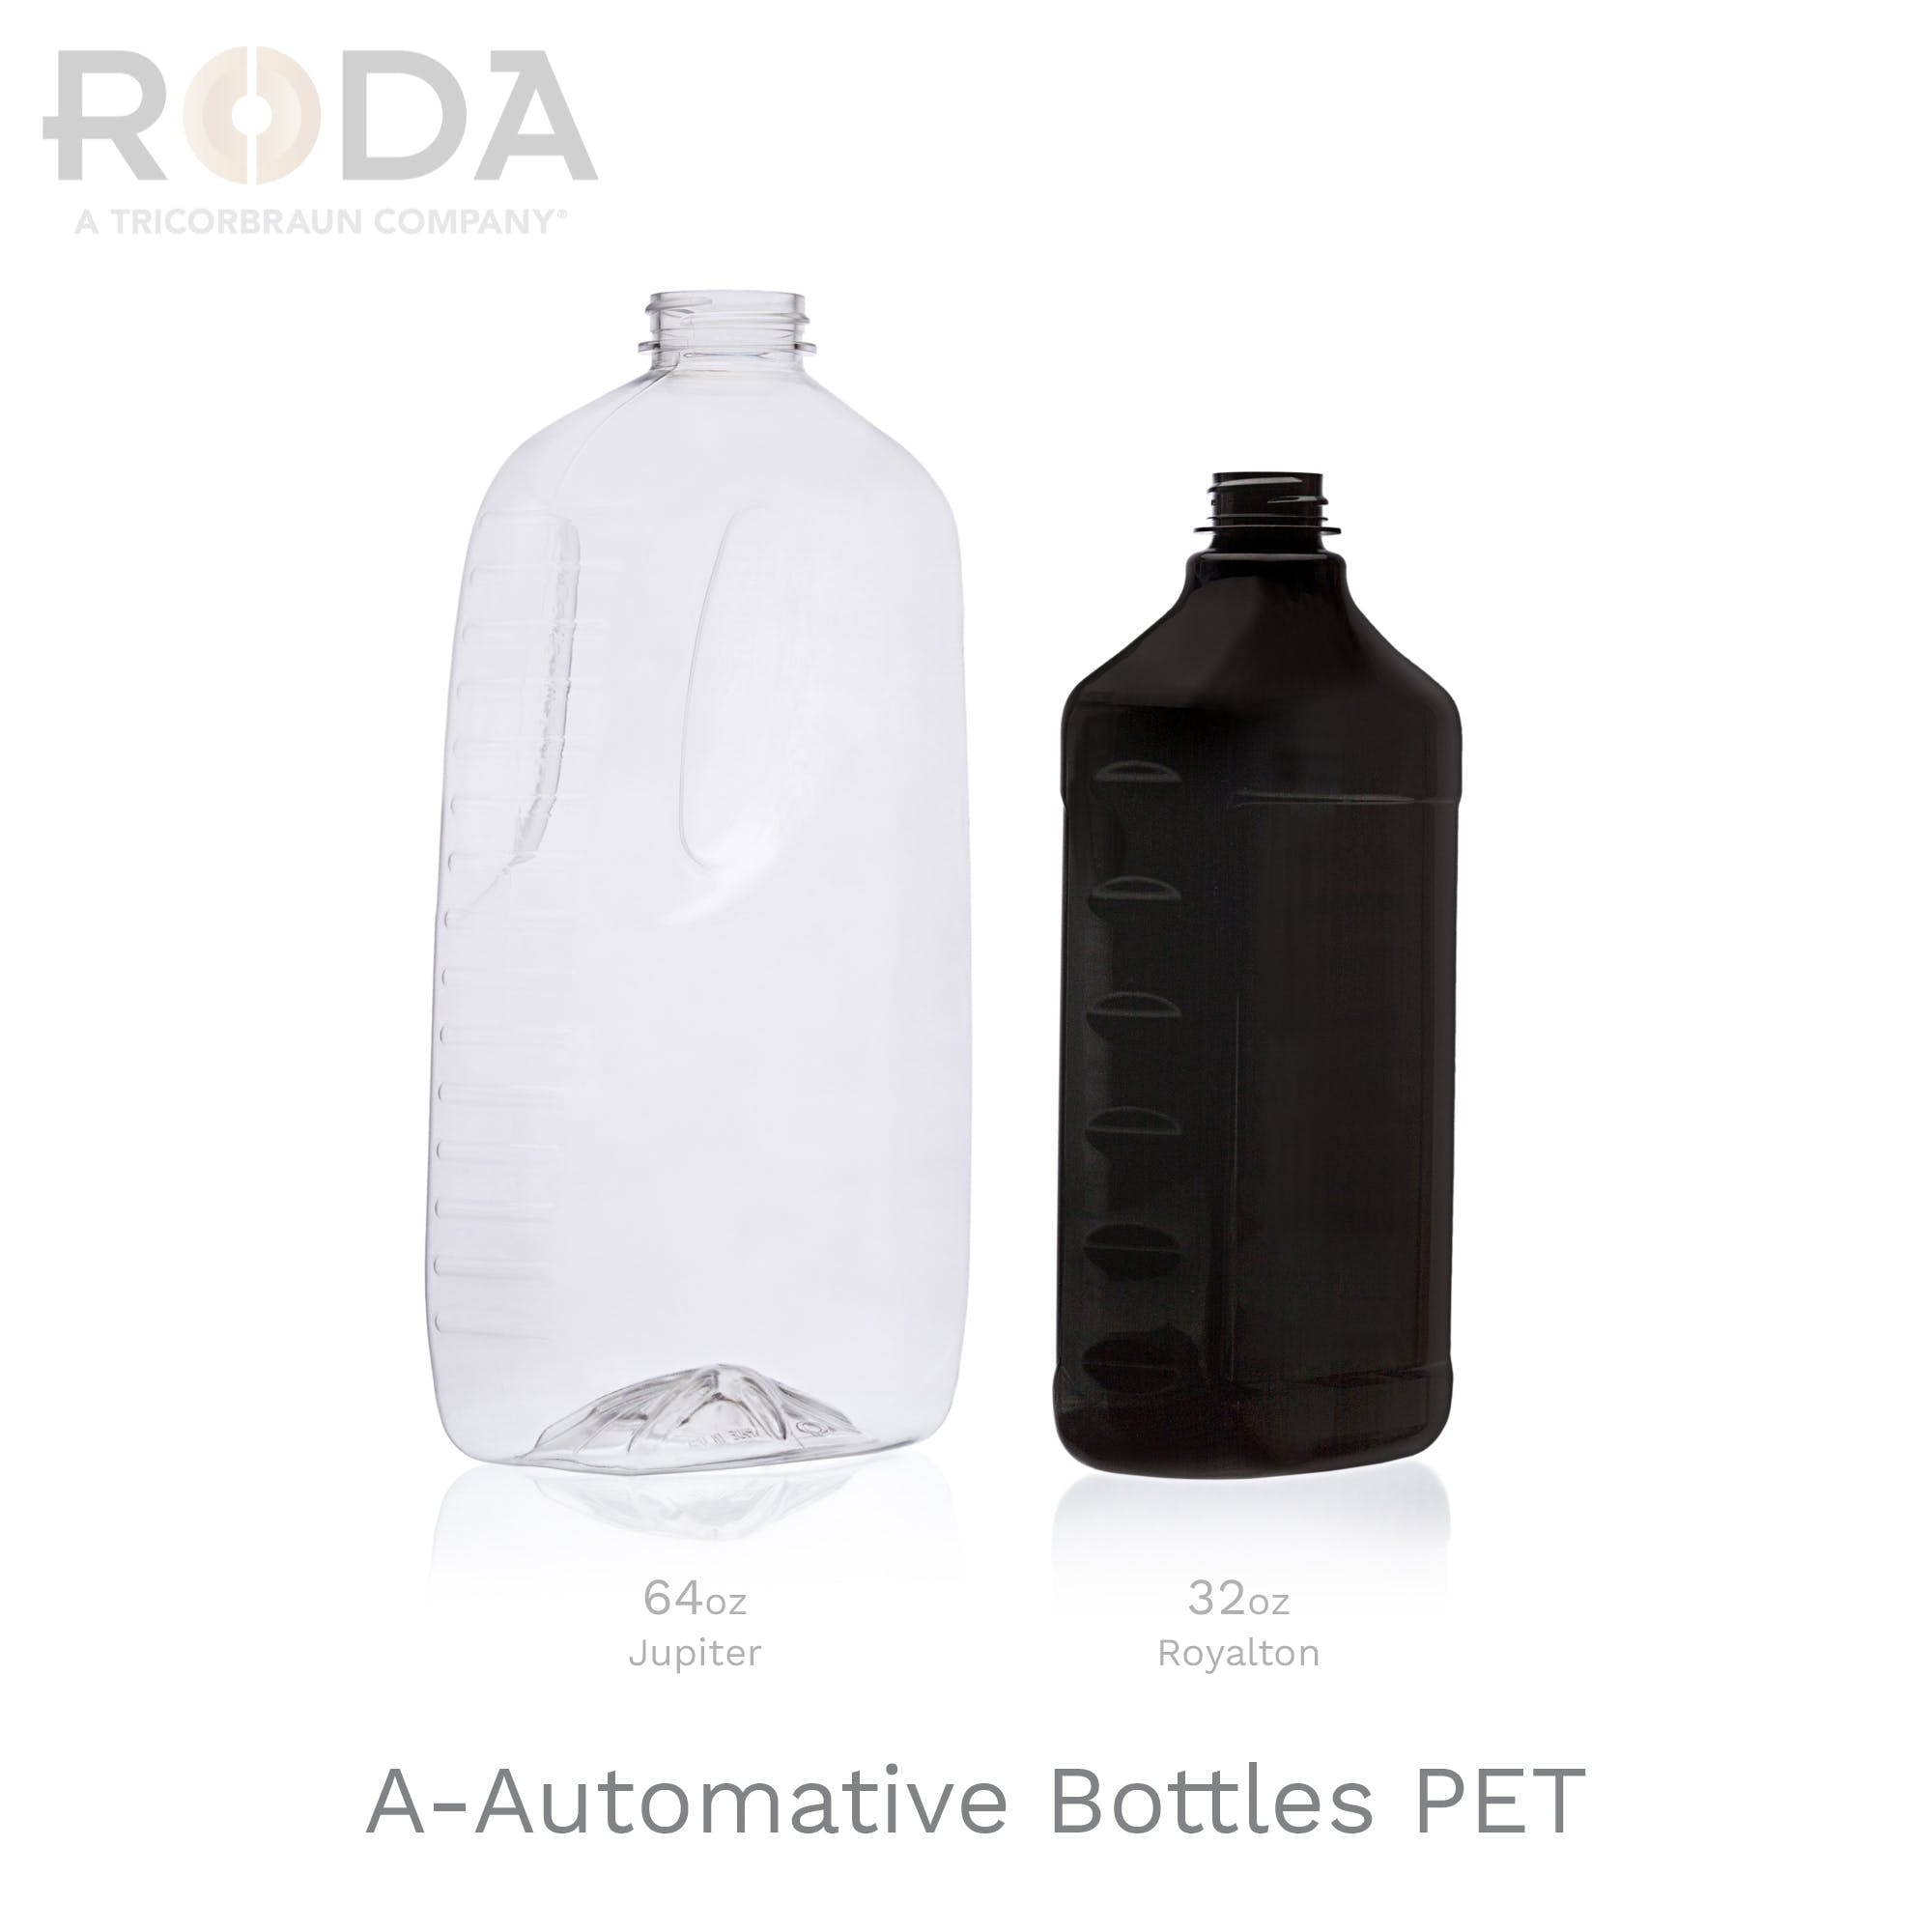 A-Automotive Bottles PET